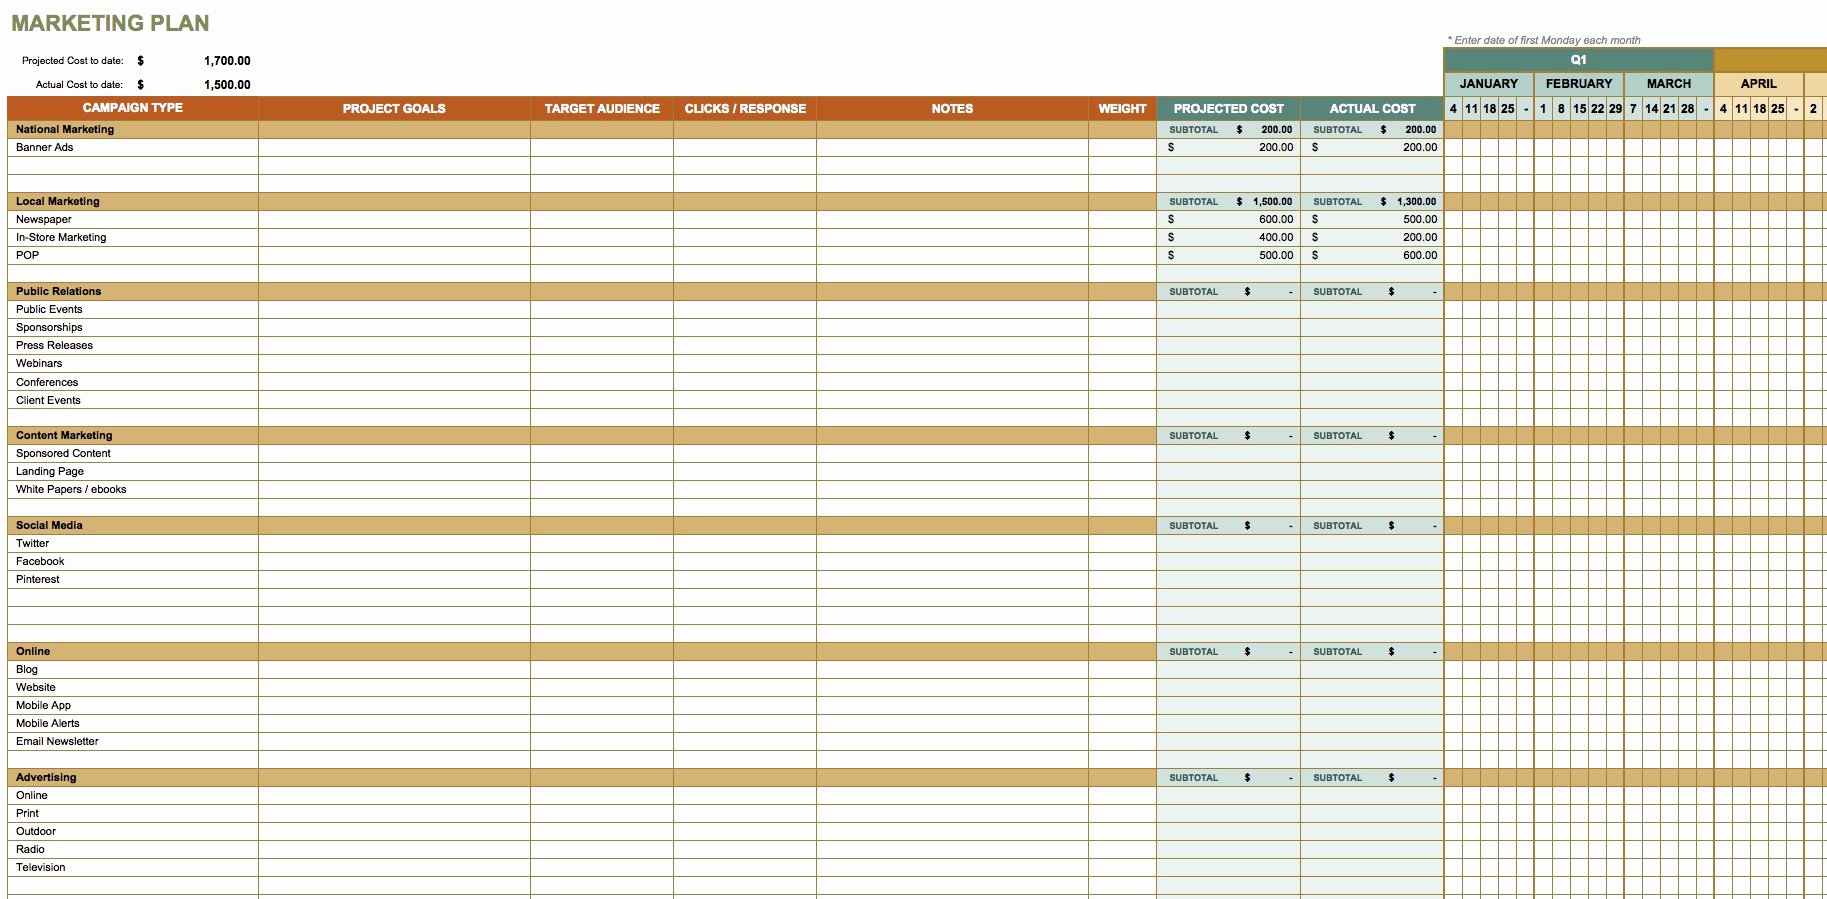 Excel Marketing Plan Template Awesome Free Marketing Plan Templates for Excel Smartsheet